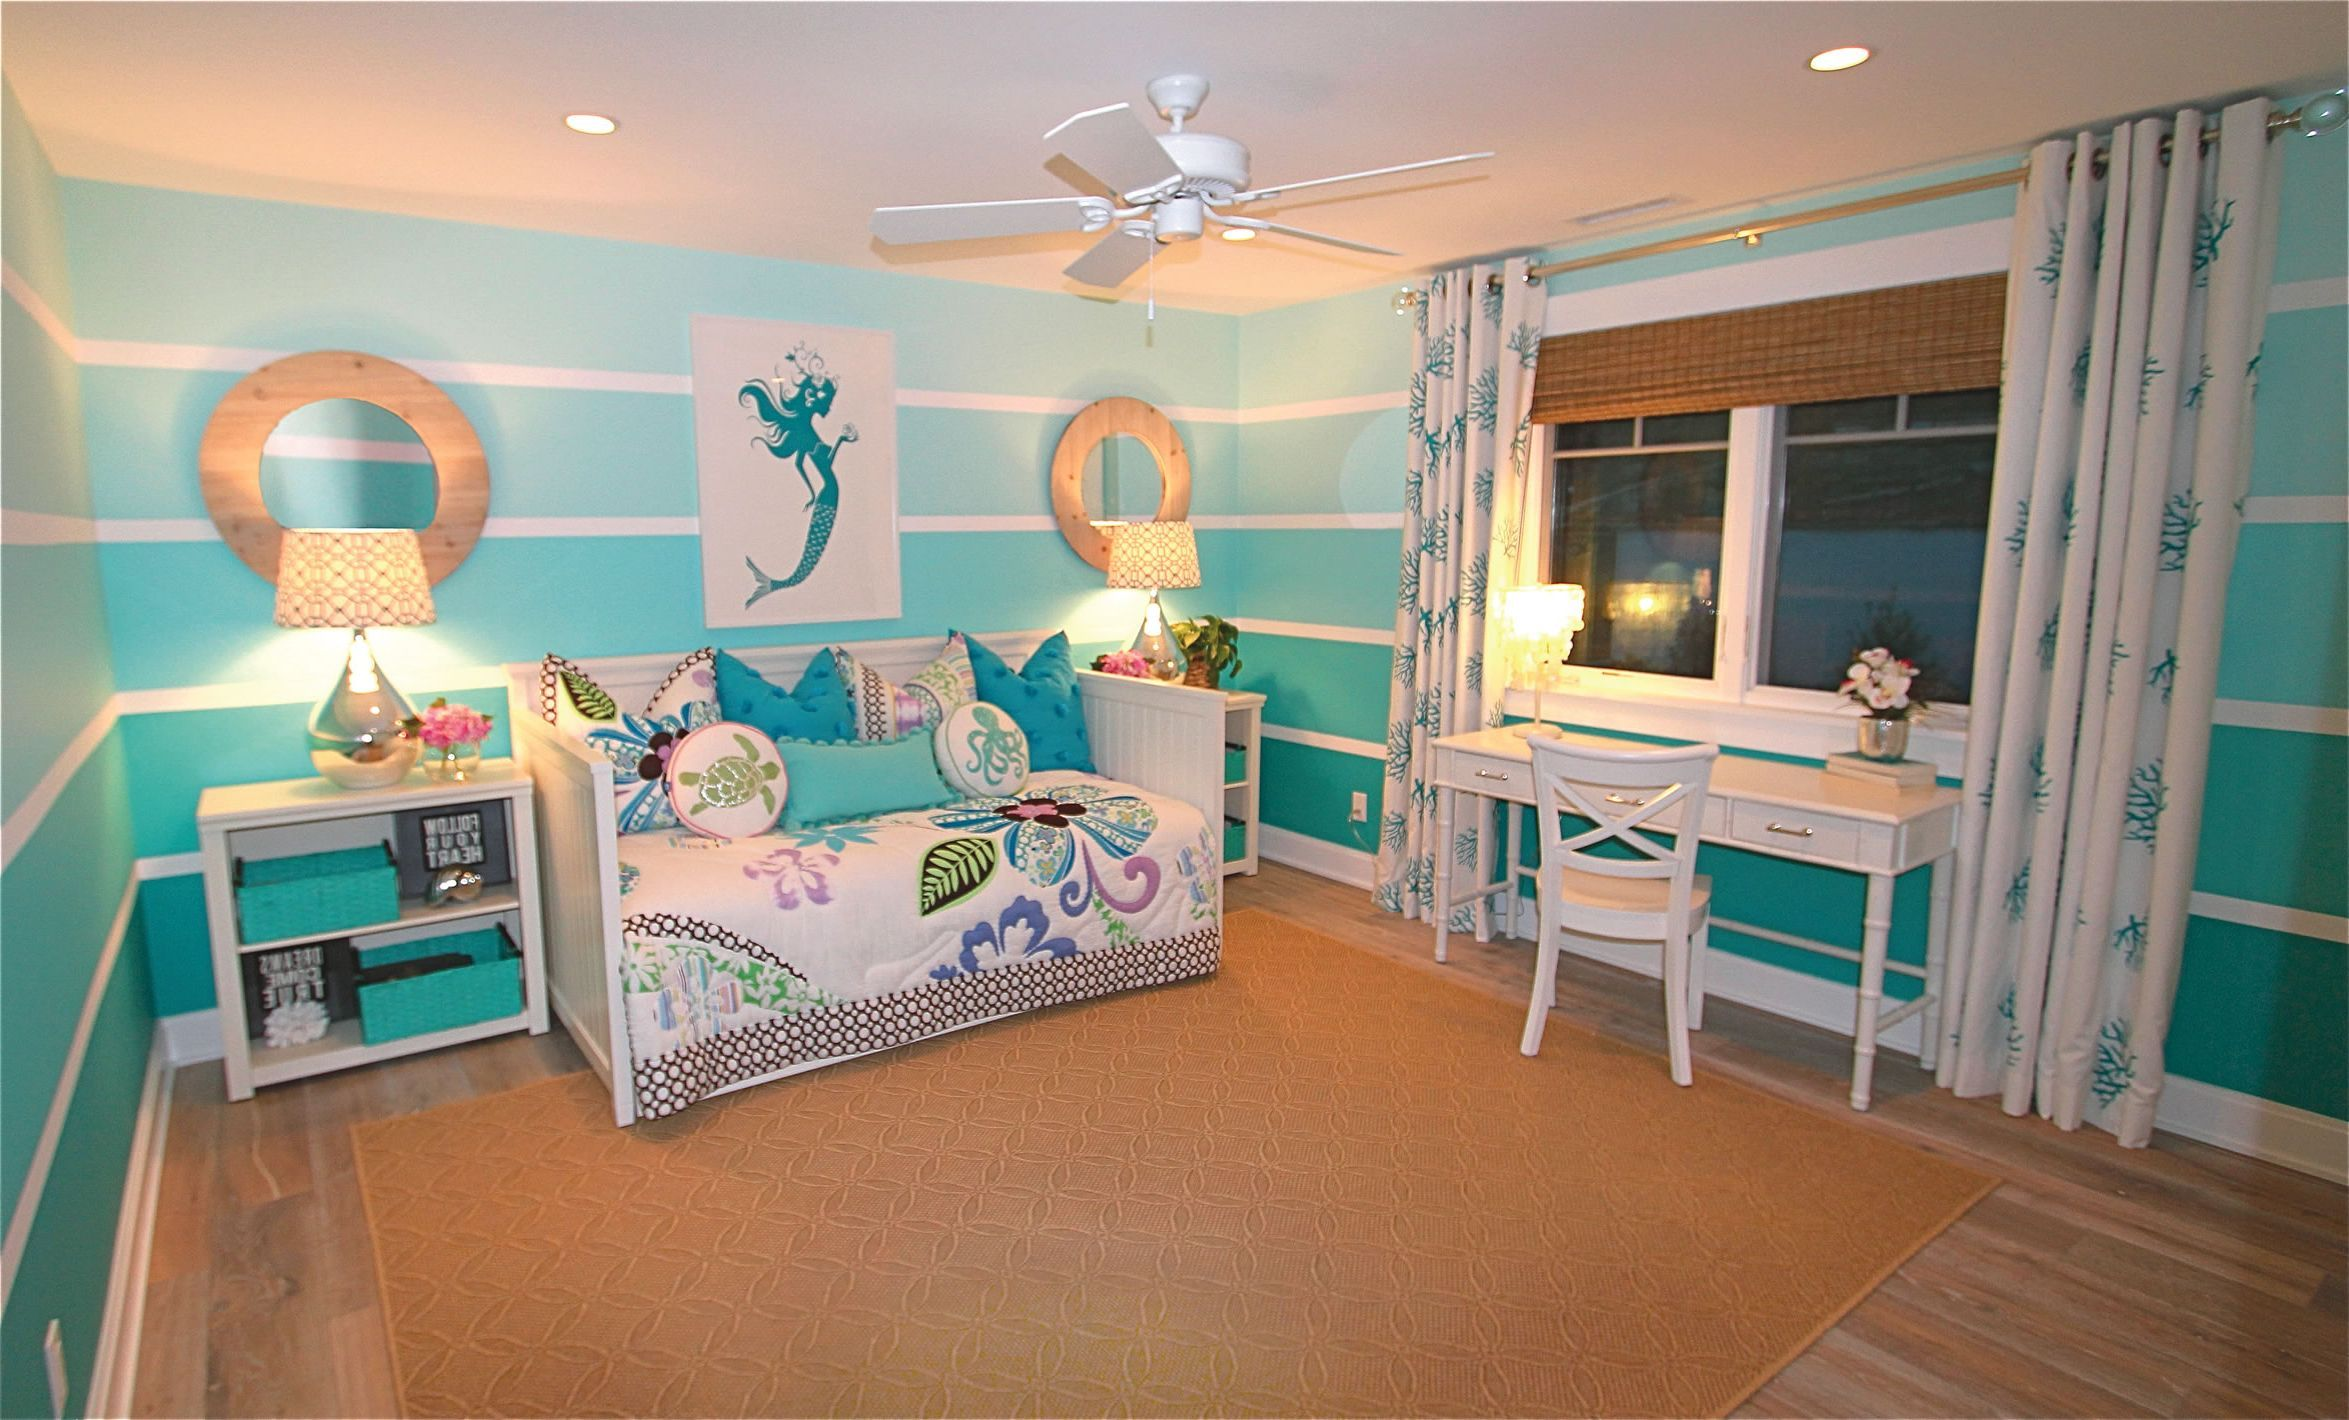 Best Some Breathtaking Images Of Great Room With Coastal Theme 400 x 300